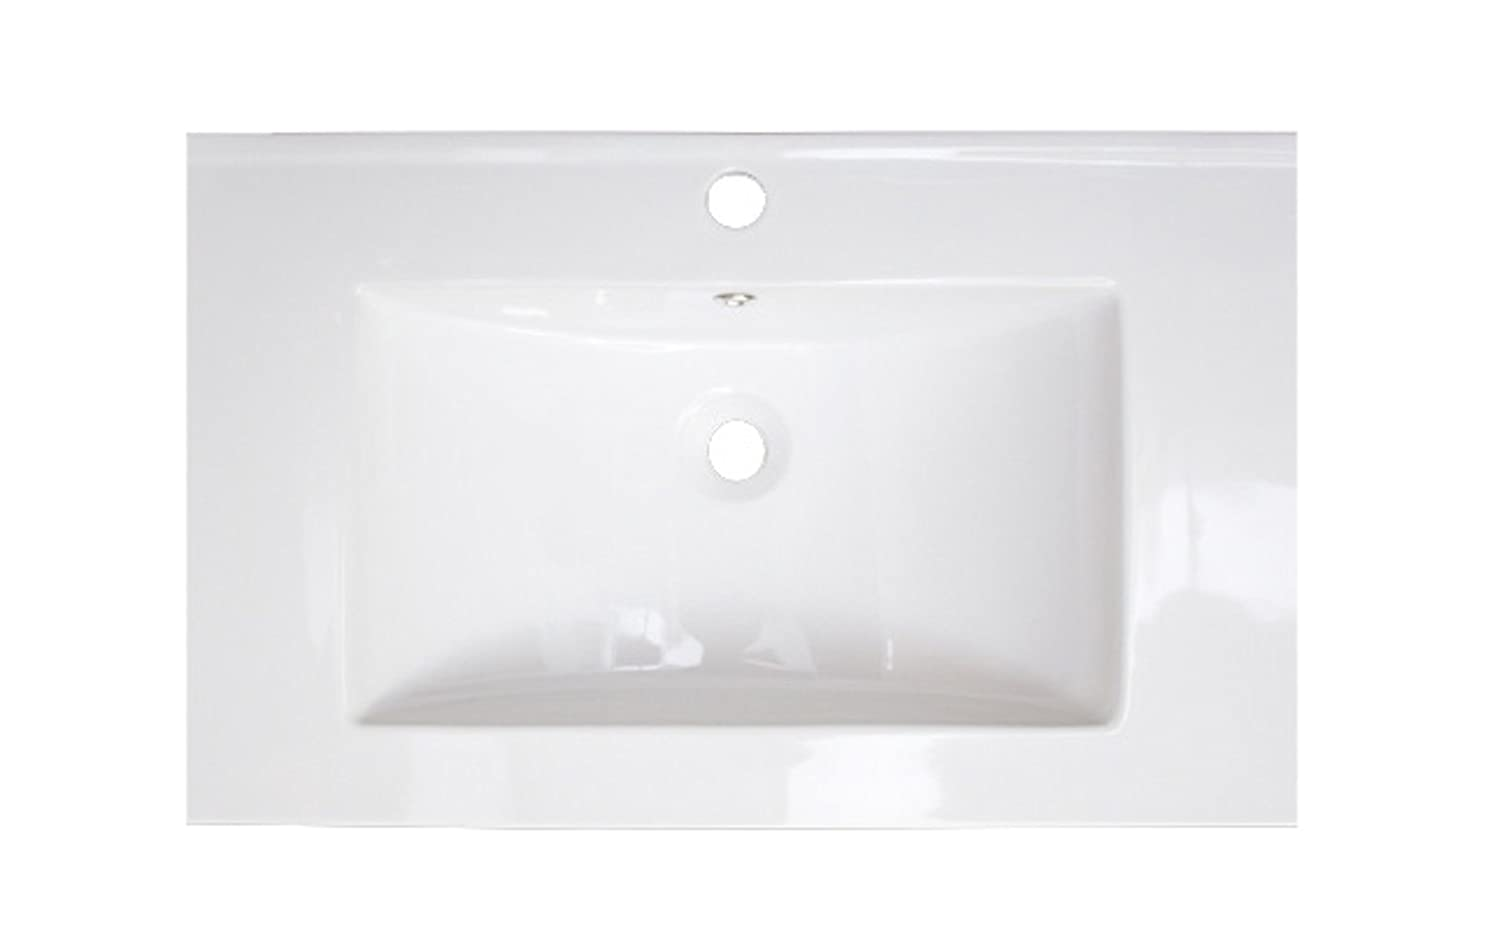 American Imaginations AI-5-1181 Ceramic Top for Single Hole Faucet, 21-Inch x 18-Inch, White IMG Imports Inc.